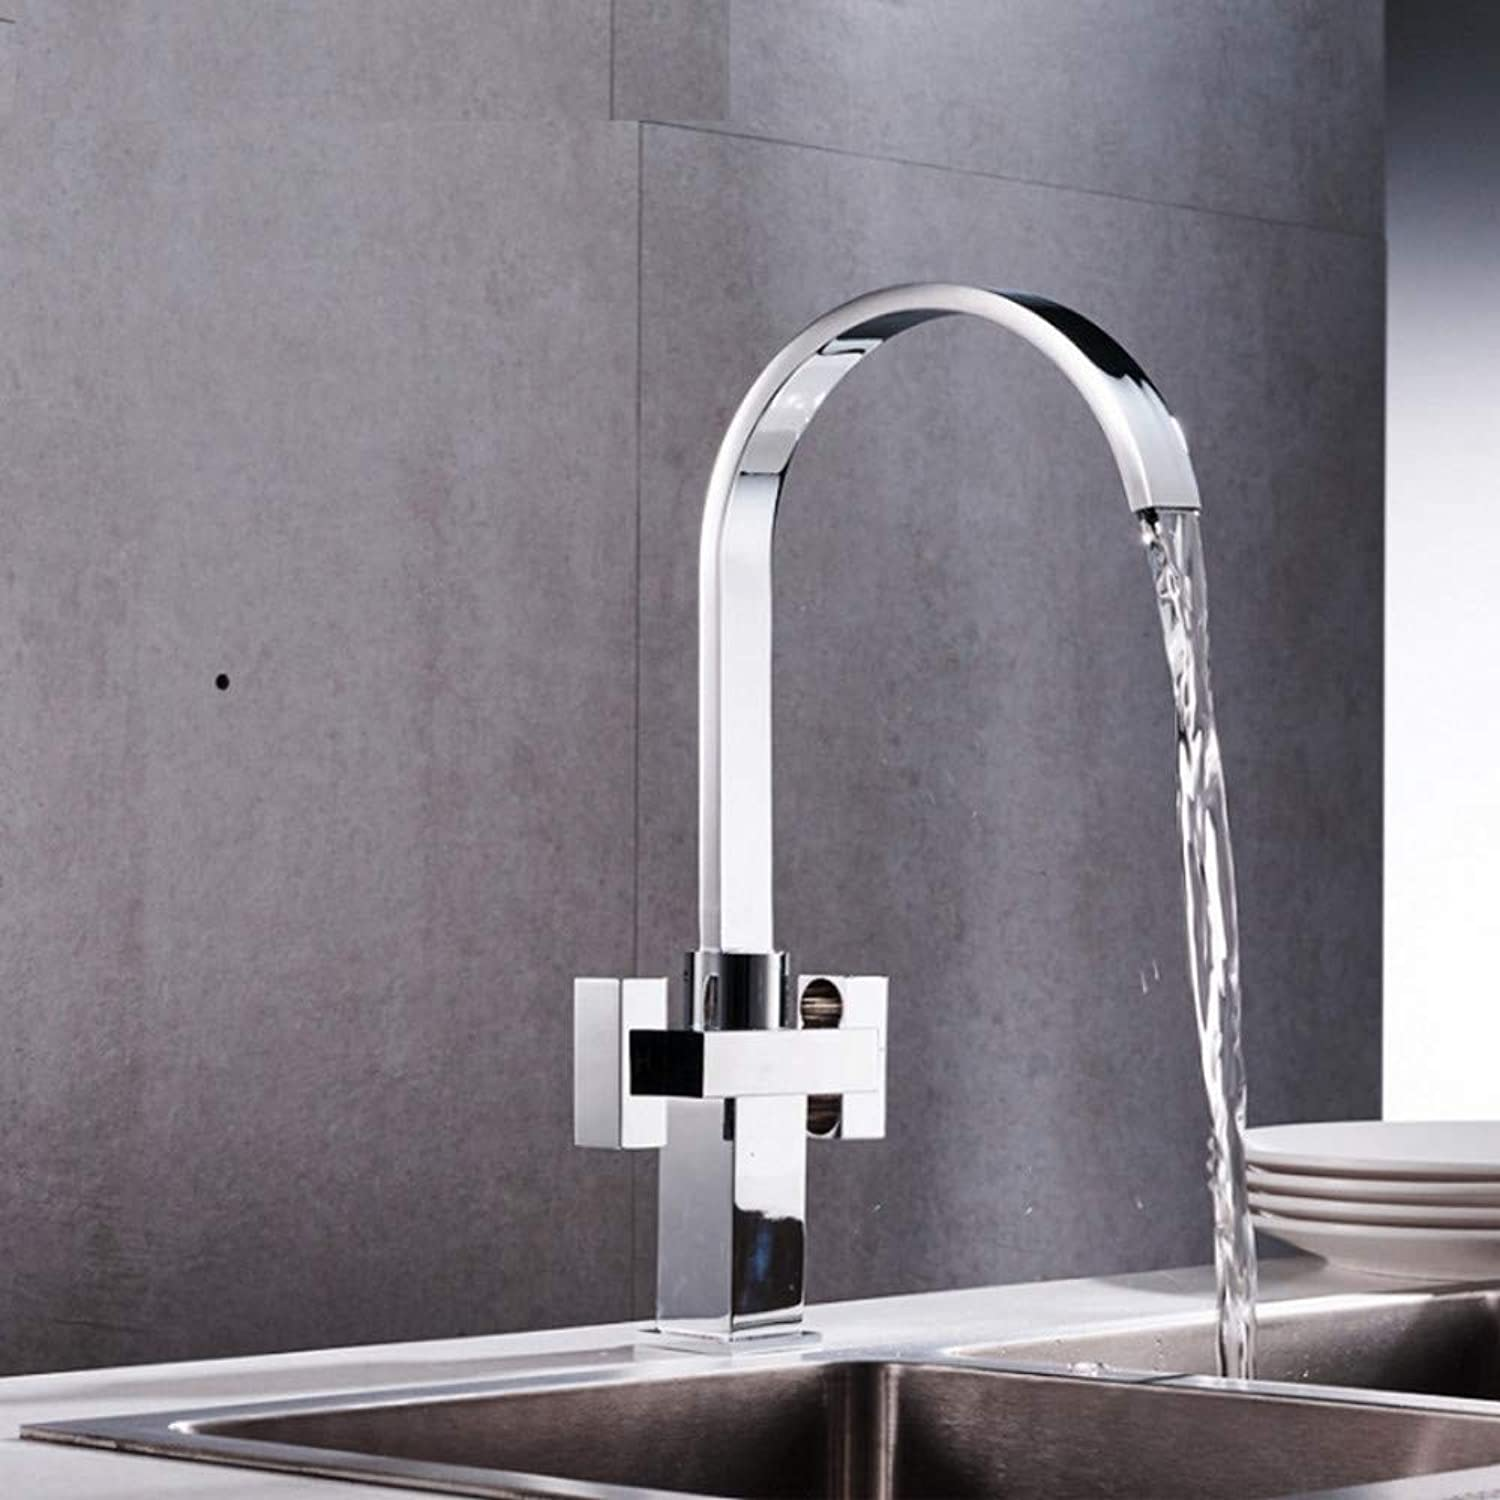 Dwthh 360 Degree redation Brass Drinking Filtered Water Kitchen Faucet Bend Double Right Angle Right Angle Faucet Kitchen Sink Tap